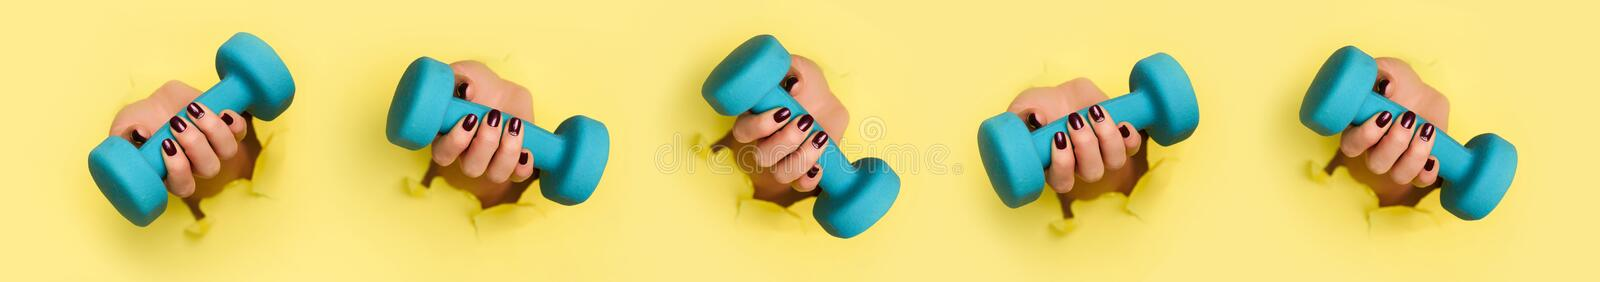 Chaotic pattern of female woman hand holding blue dumbbell on yellow background. Fitness, sport, healthy lifestyle, diet concept. stock photography